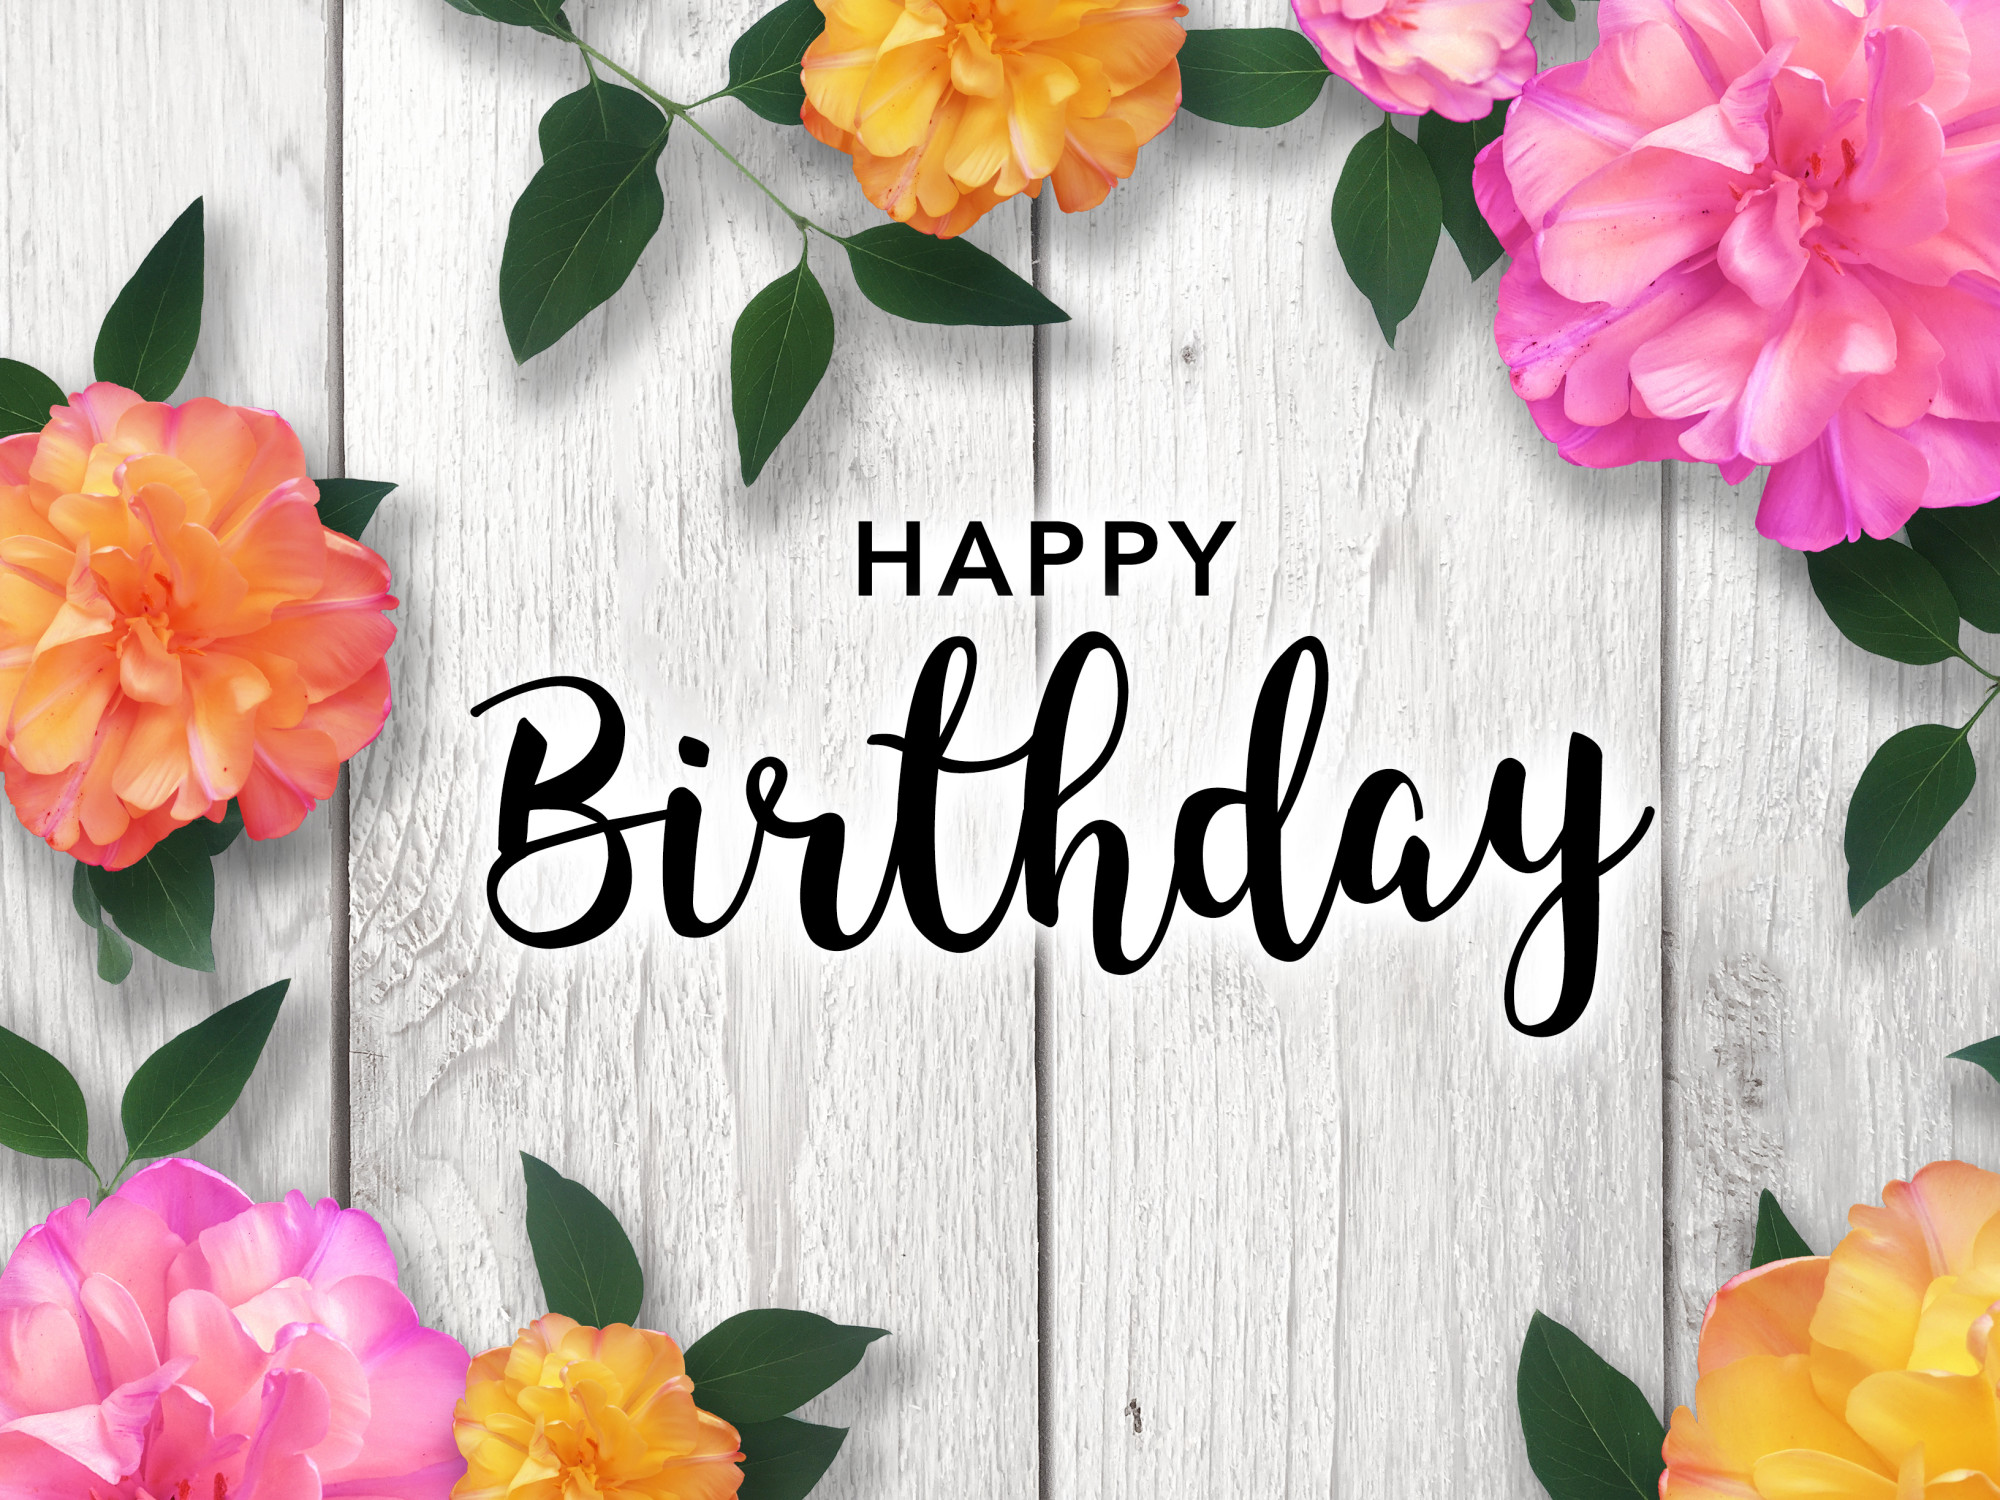 Happy Birthday Card with Colorful Flower Border